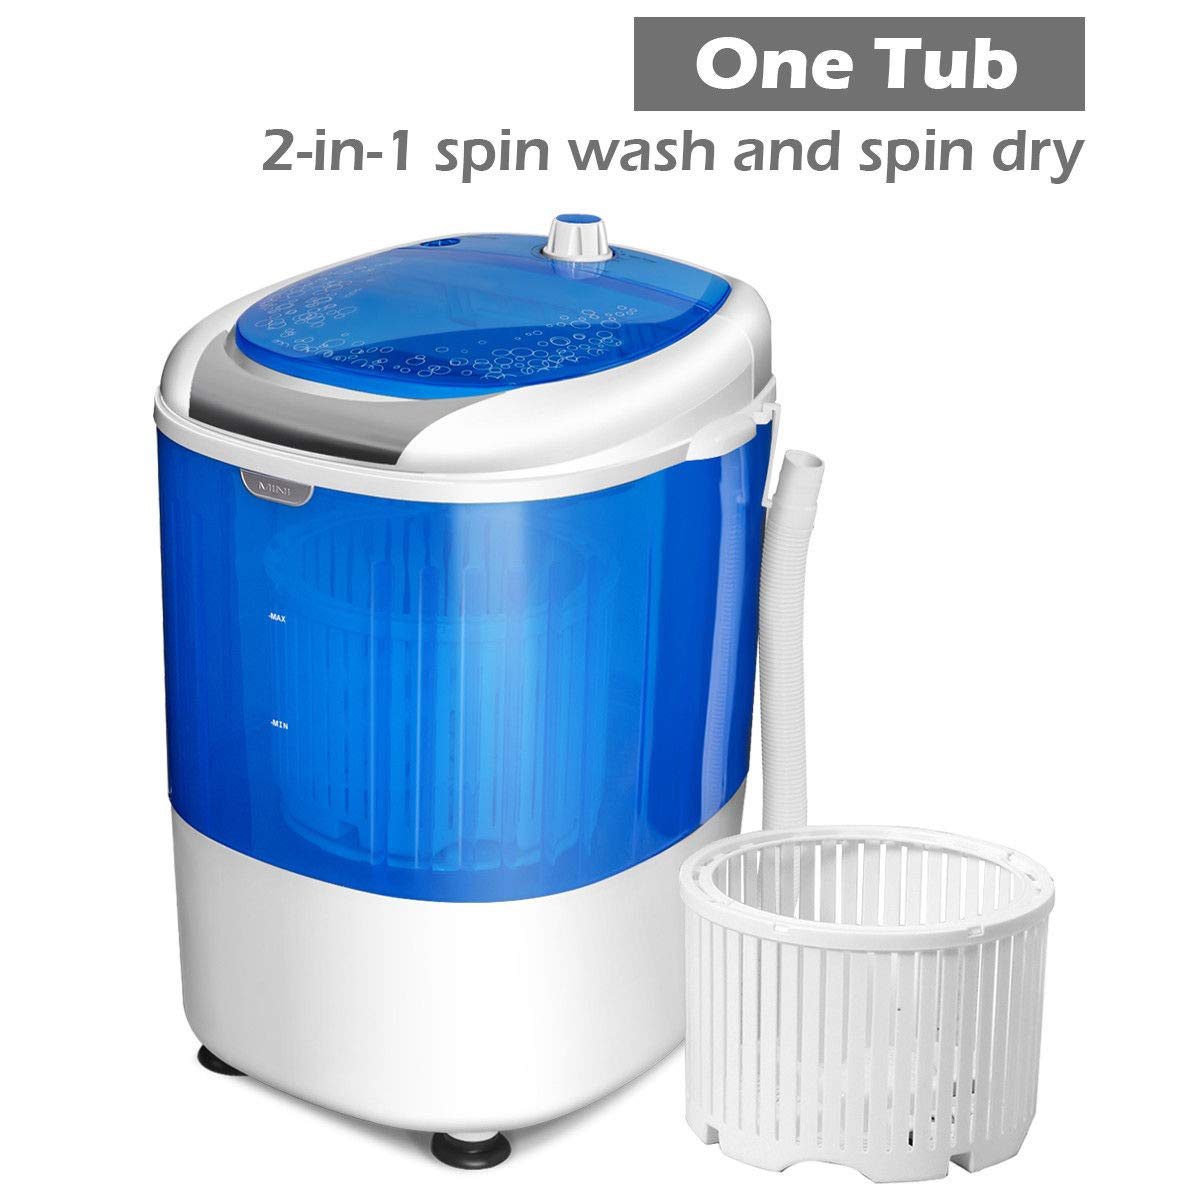 COSTWAY Washing Machine Blue Rotary Controller and Washer Spin Dryer with Hose Electric Compact Laundry Machines Portable Durable Design Washer Energy Saving